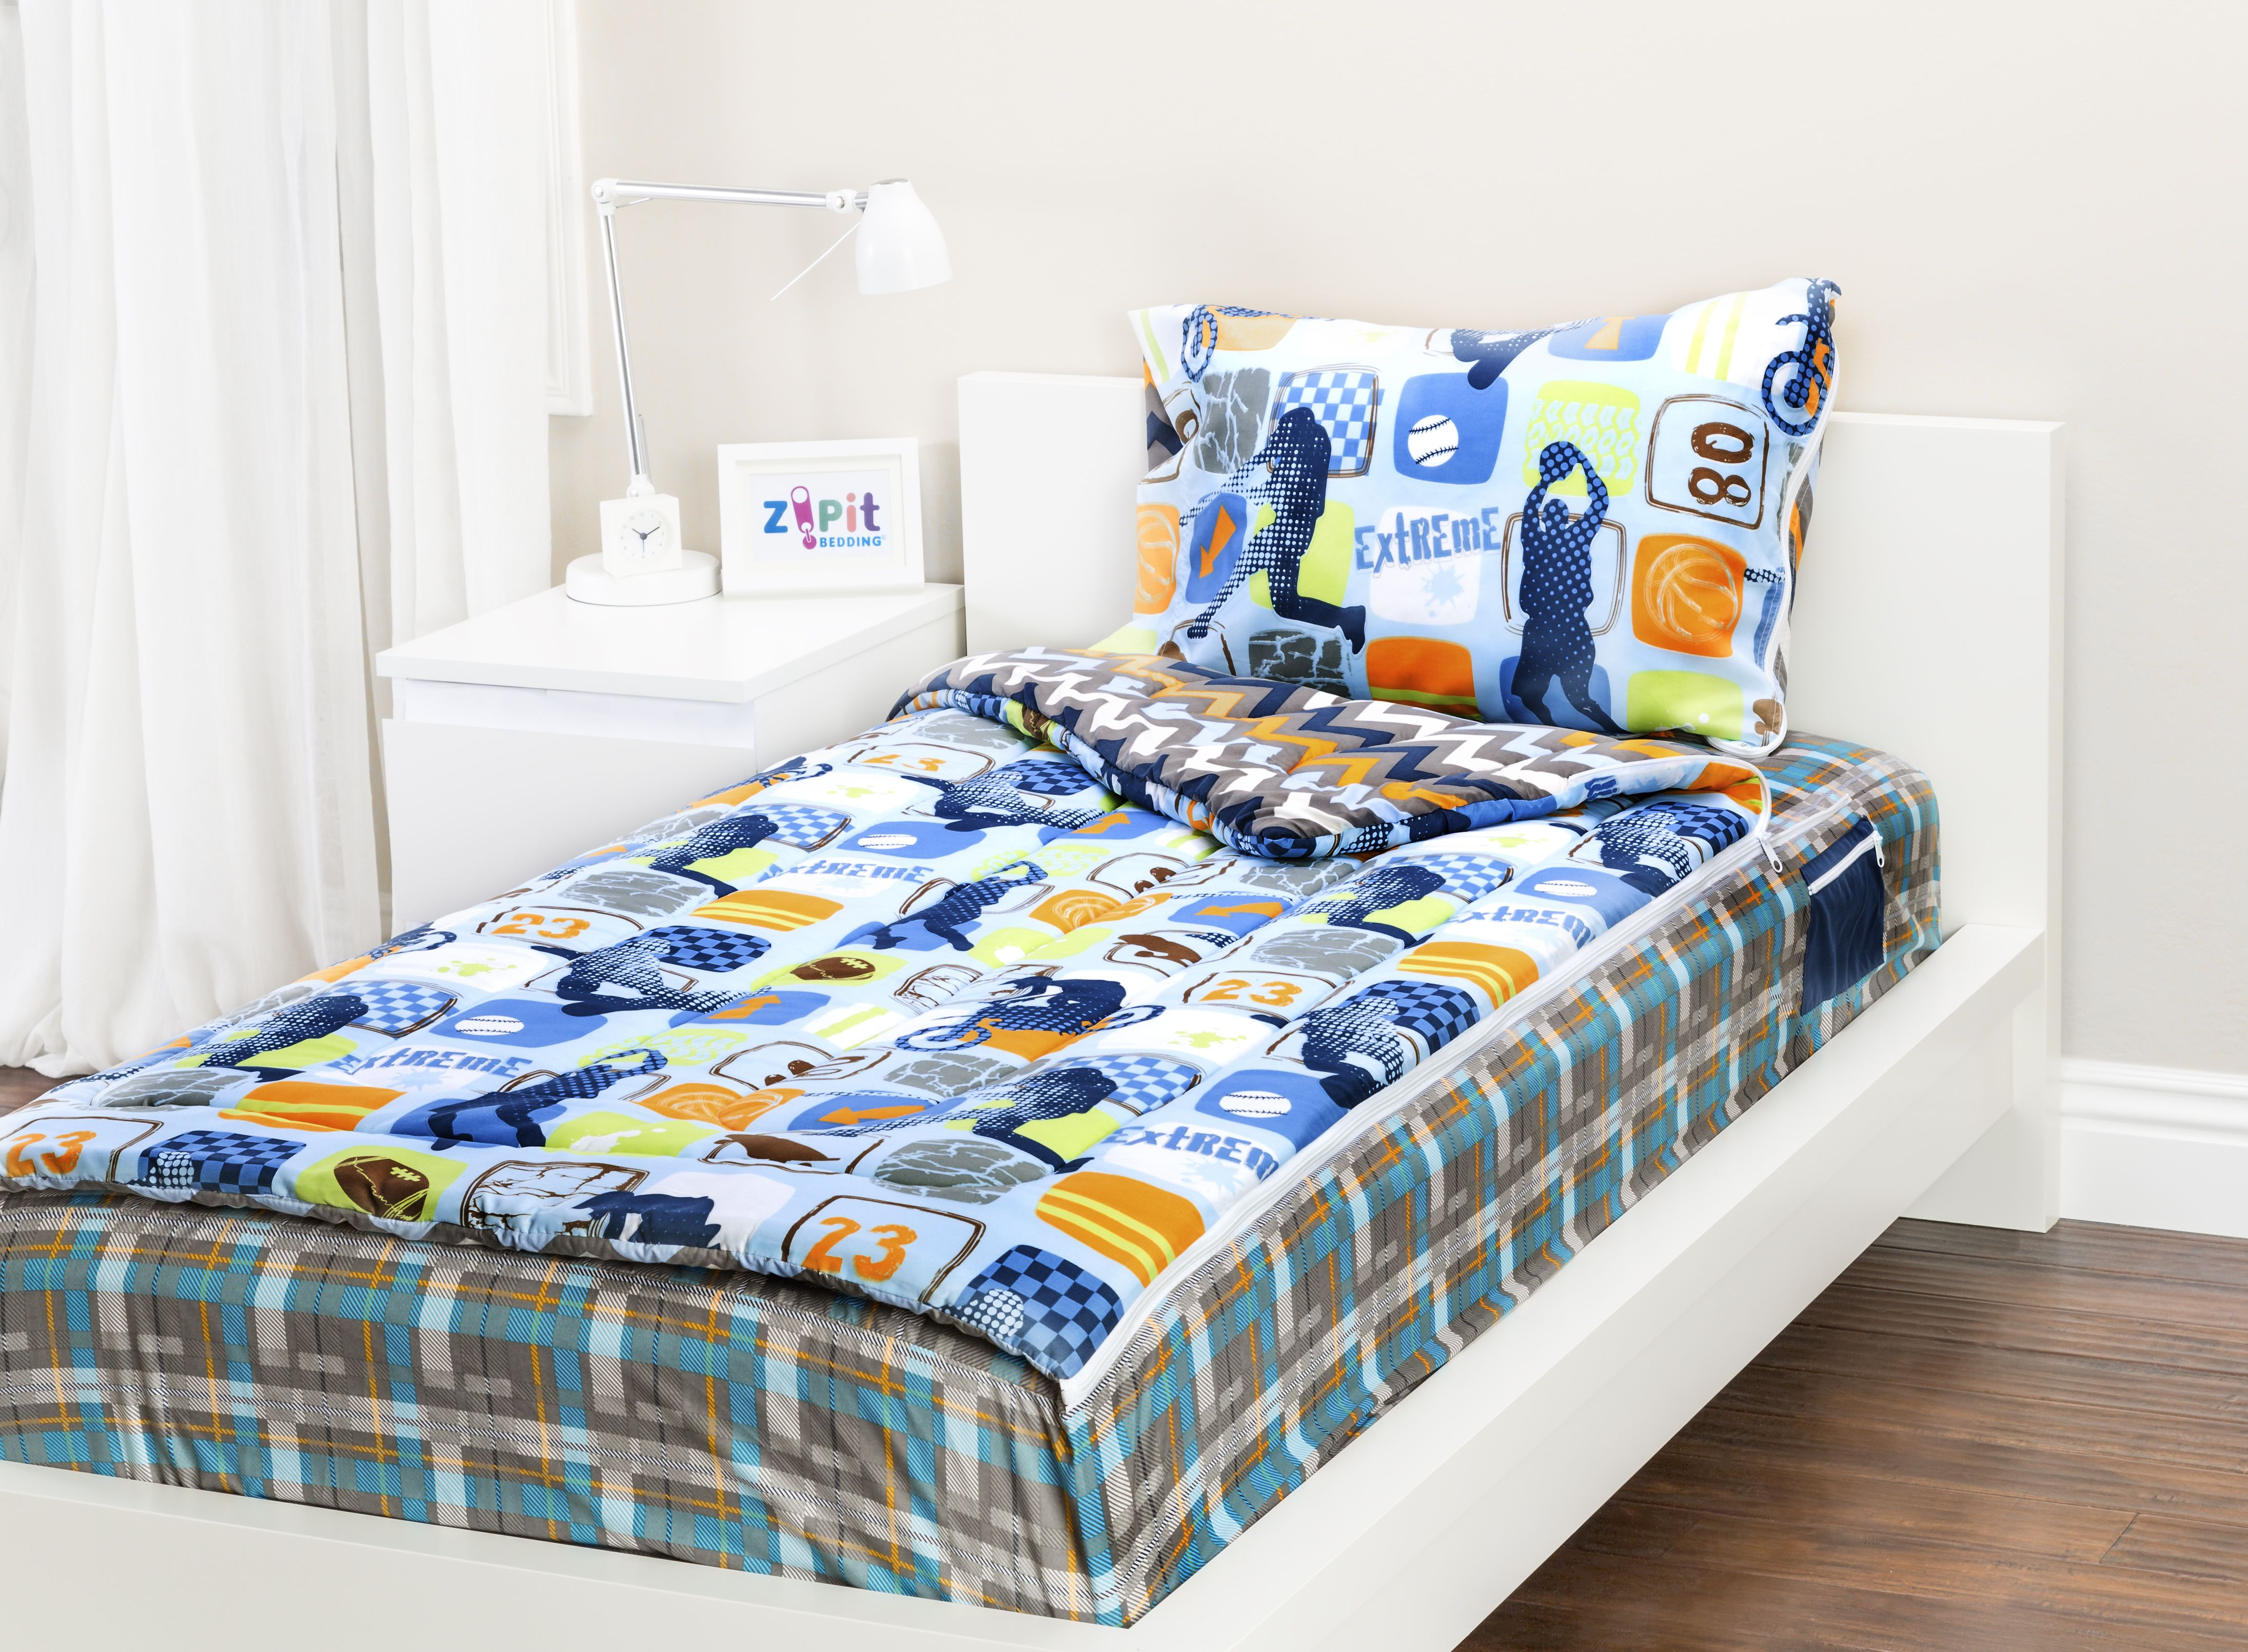 Zipit Bedding Mix 'N Match with Extreme Sports and Wild